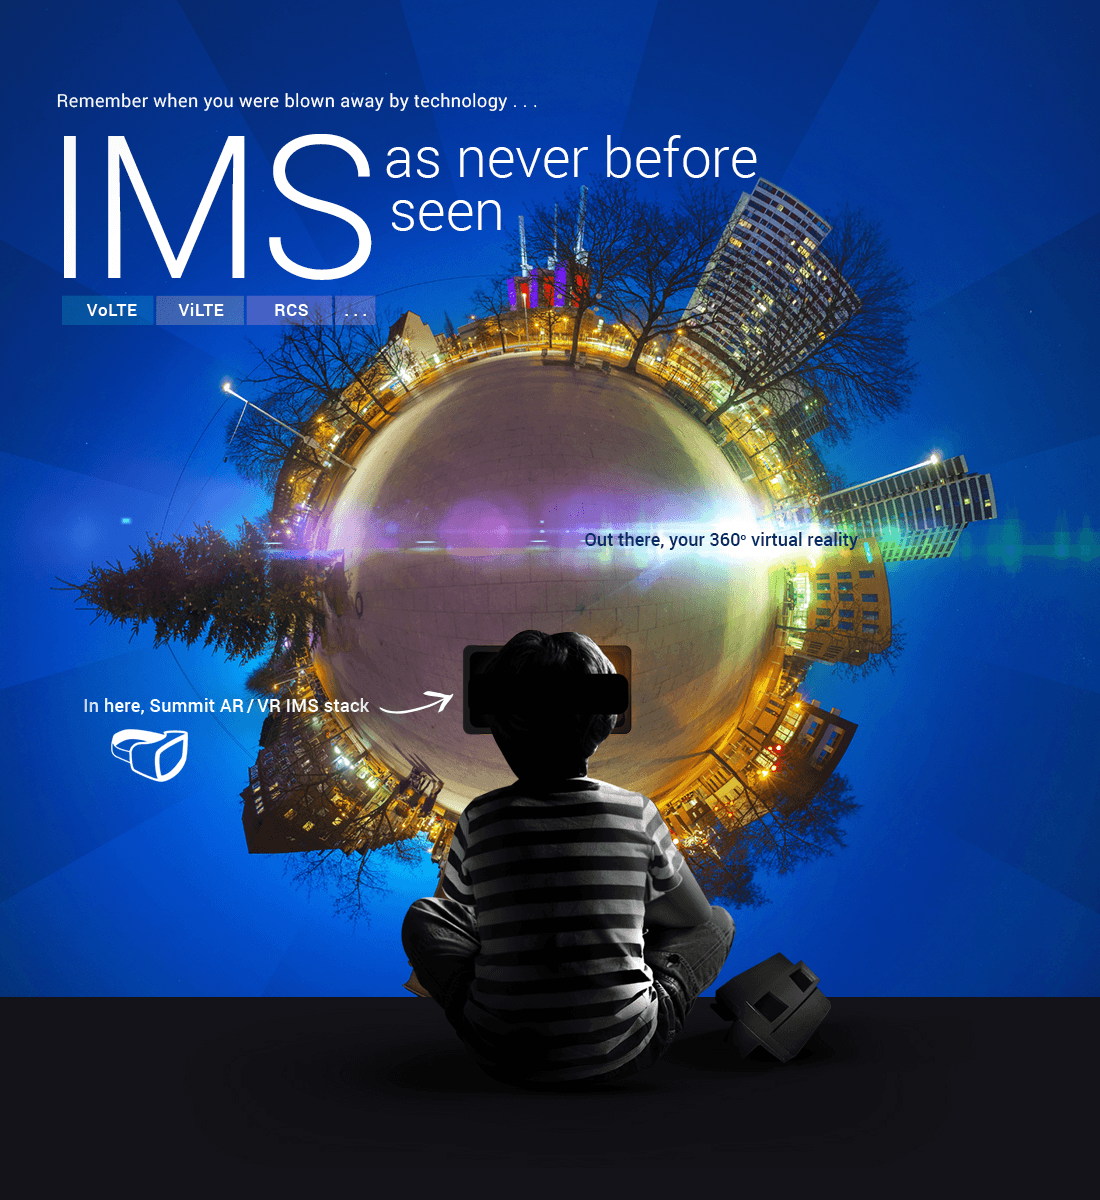 Remember when you were blown away by technology... IMS as never before seen